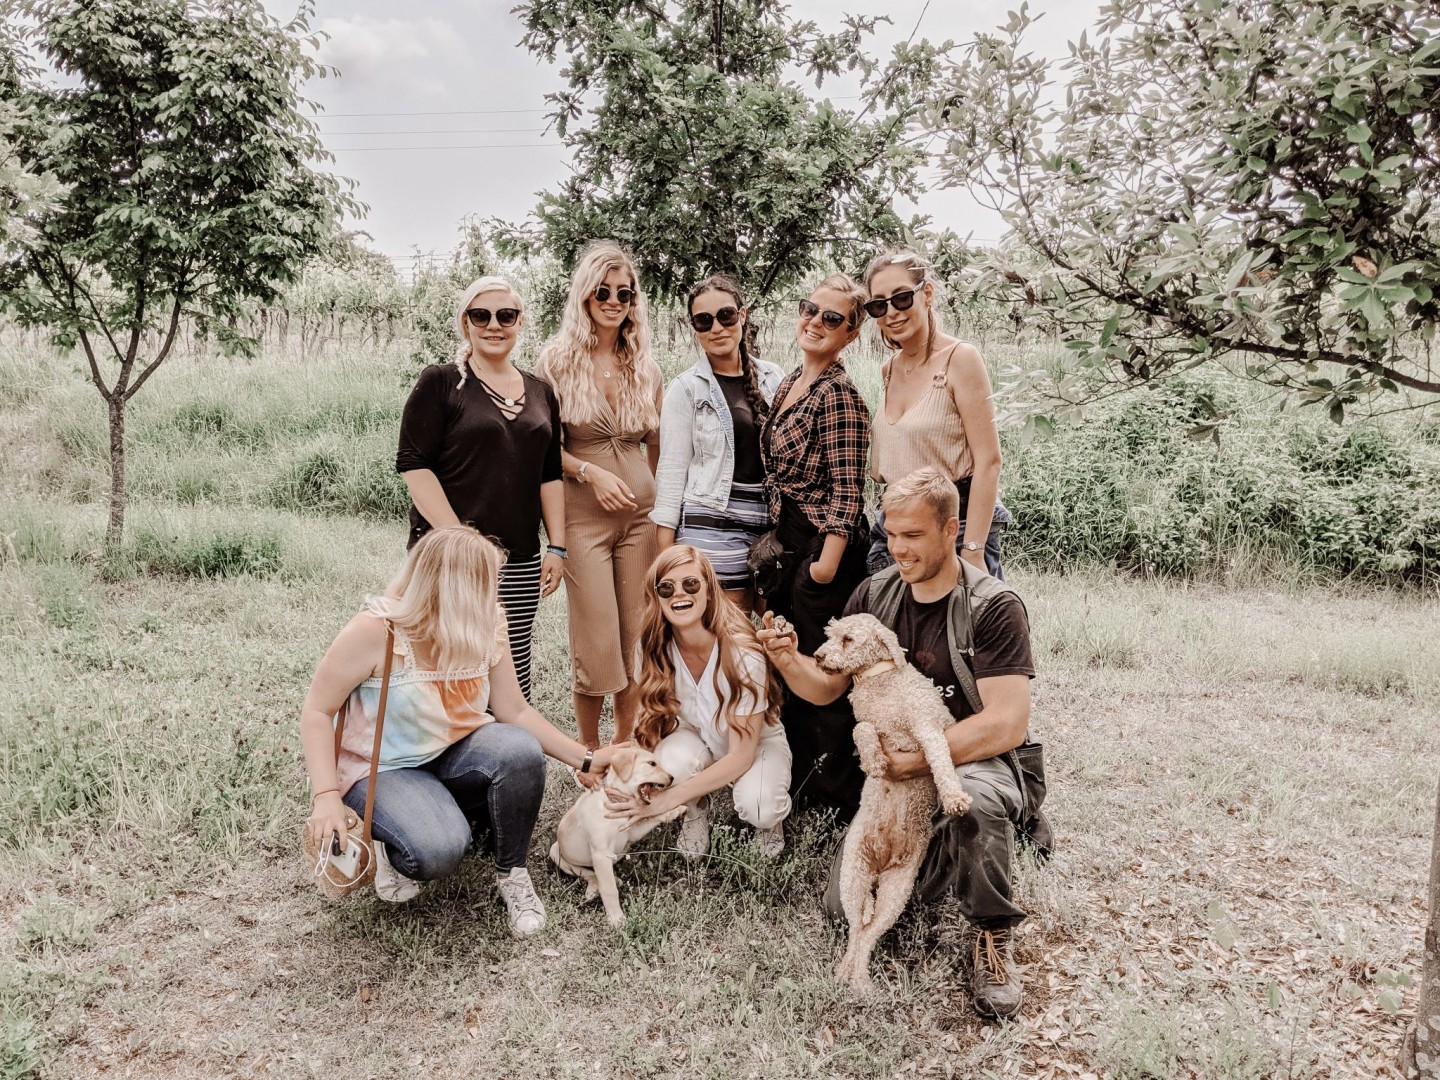 Lifestyle blogger Mollie Moore shares an Istria, Croatia travel guide. | Istria, Croatia Travel guide by popular London fashion and travel blogger Mollie Moore: image of 7 women, one man and two dogs standing together in an orchard in Istria, Croatia.